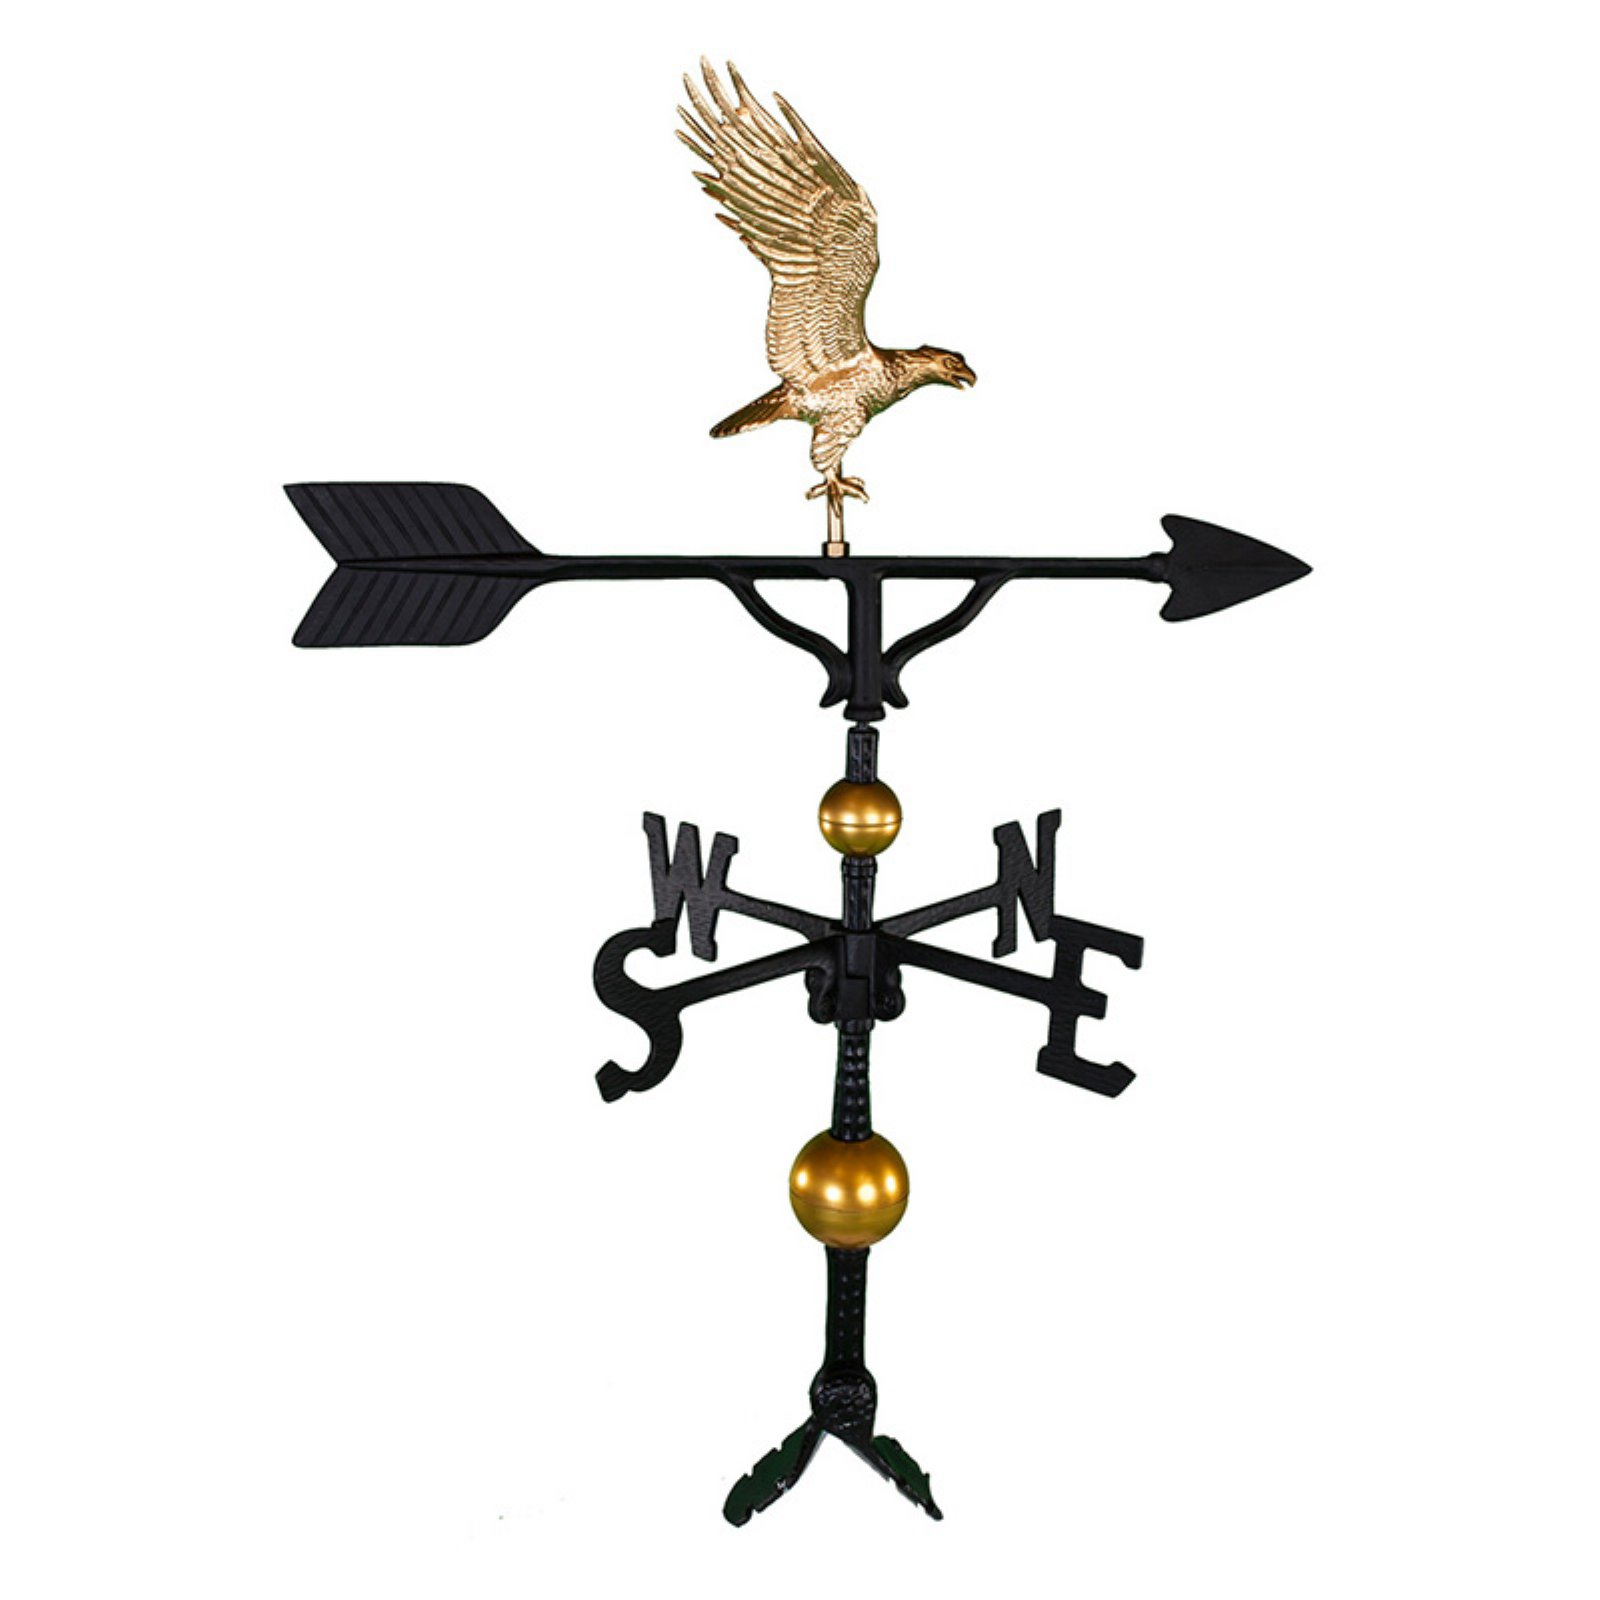 Deluxe Gold Full Bodied Eagle Weathervane 32 in. by Montague Metal Products